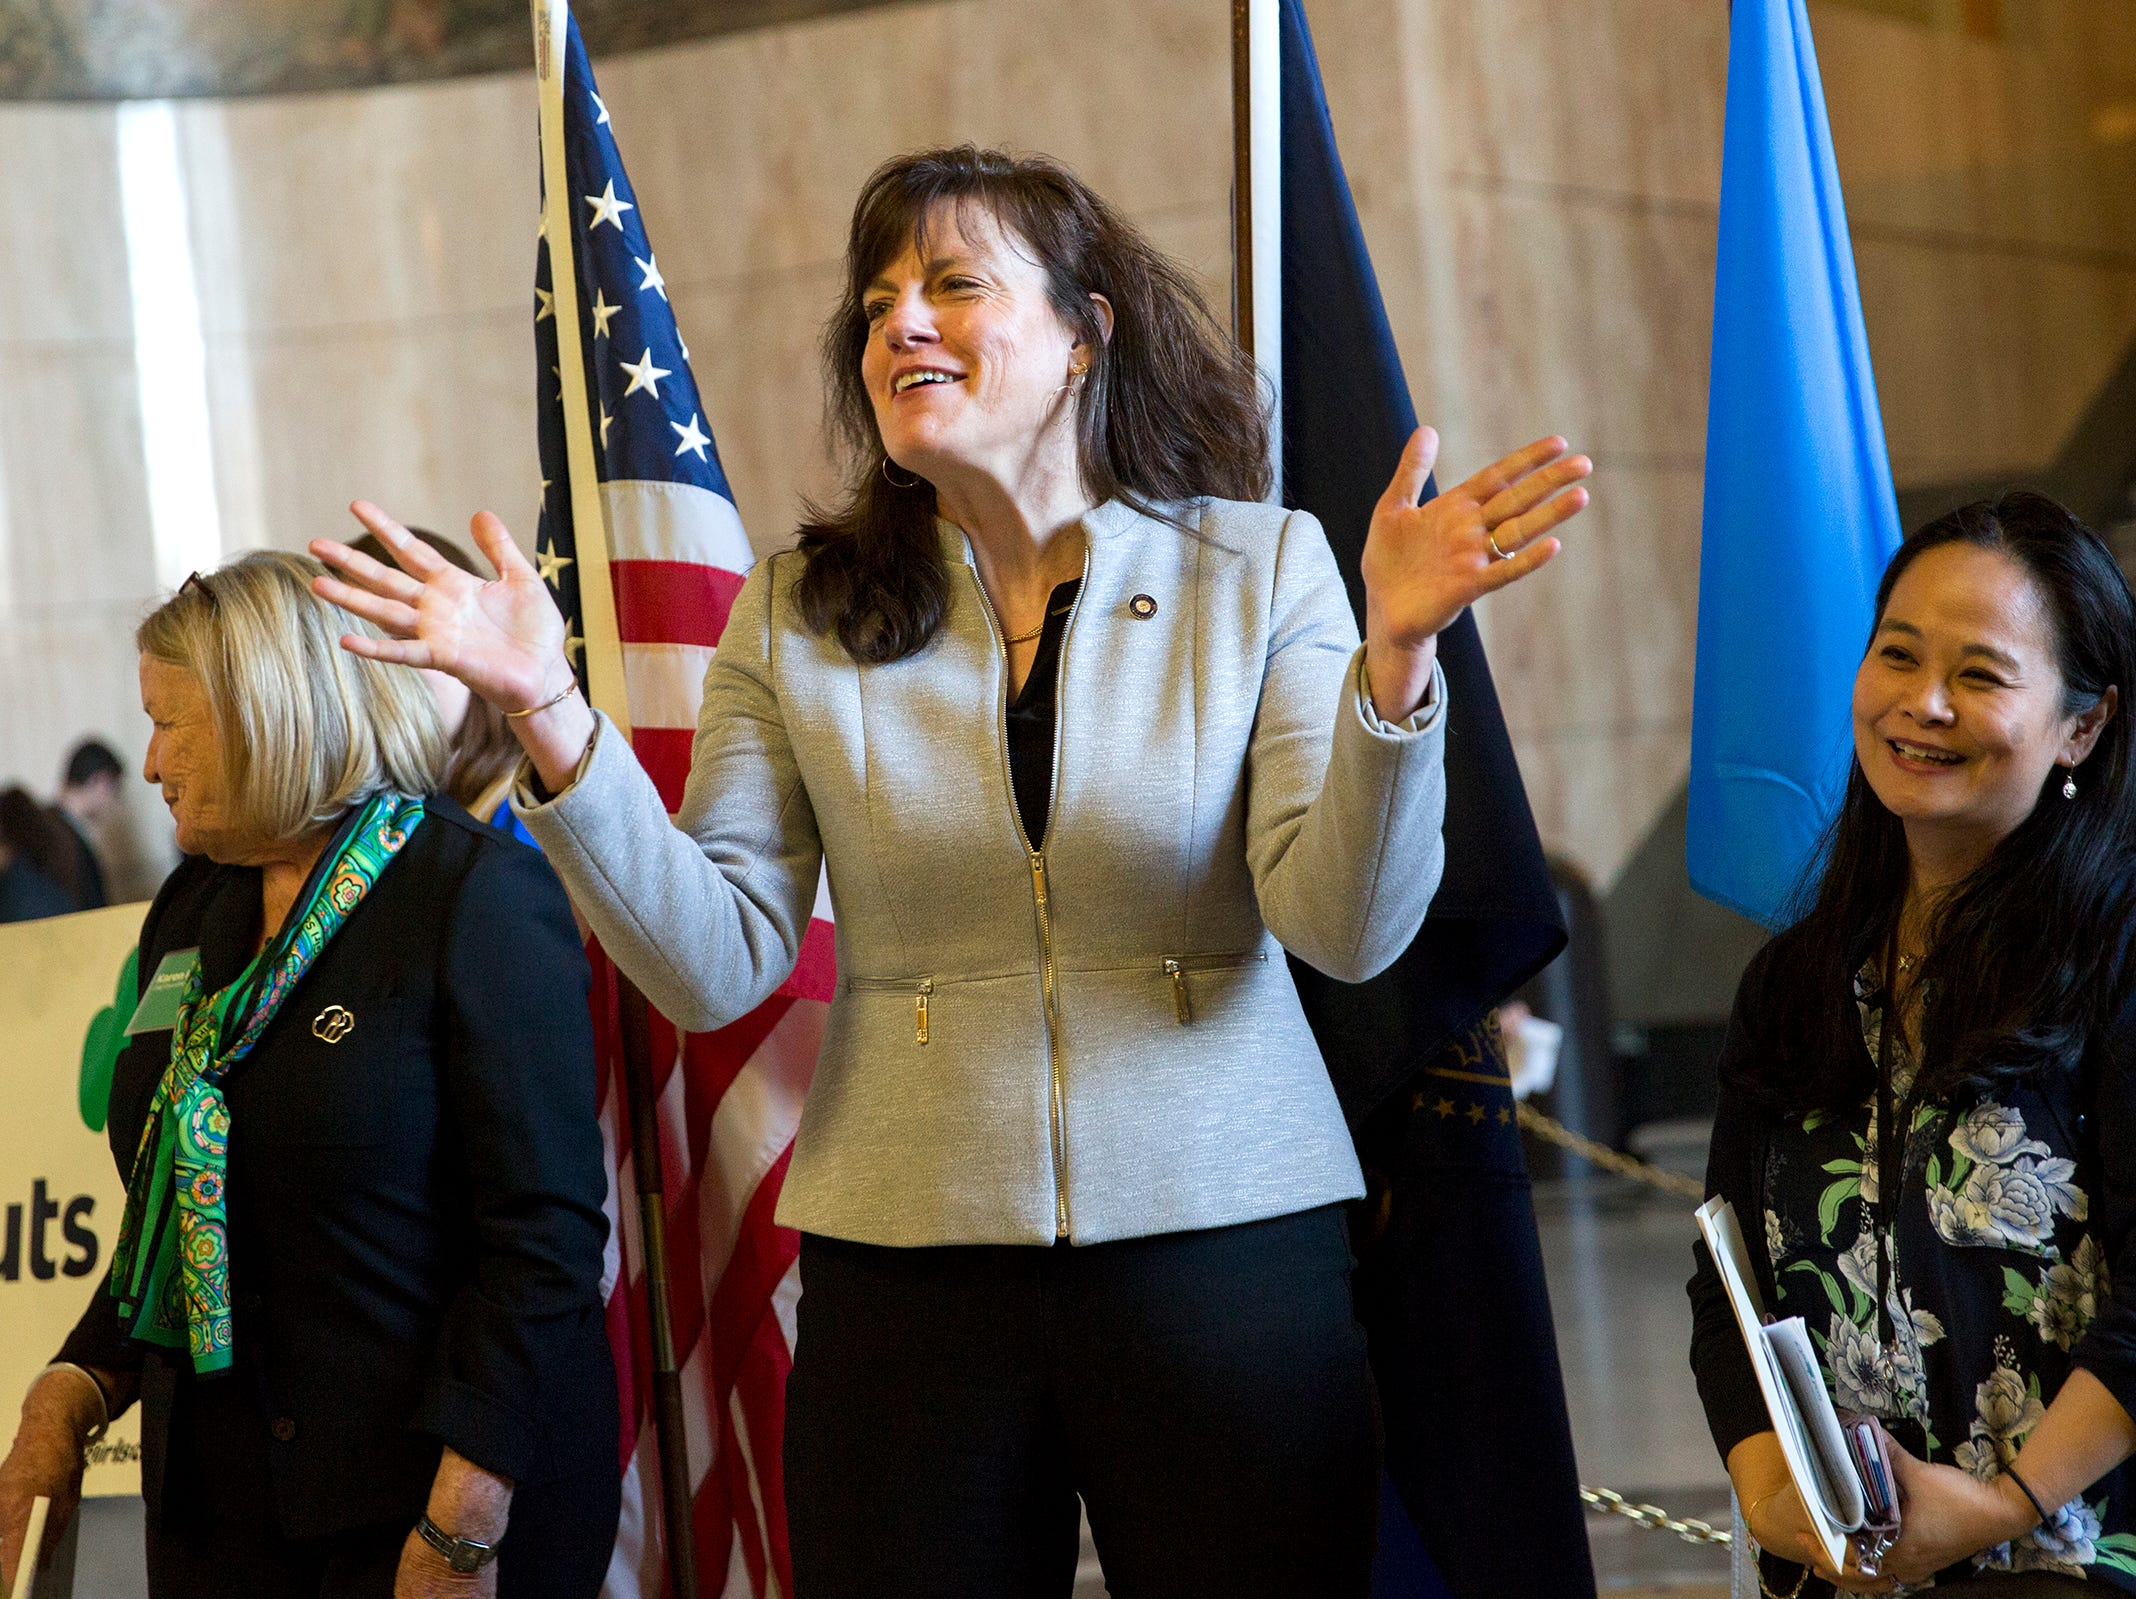 Senator Kathleen Taylor, D-Milwaukie, speaks to Girl Scouts from across the state during Girl Scout Leadership Day at the Oregon State Capitol in Salem March 12, 2019.